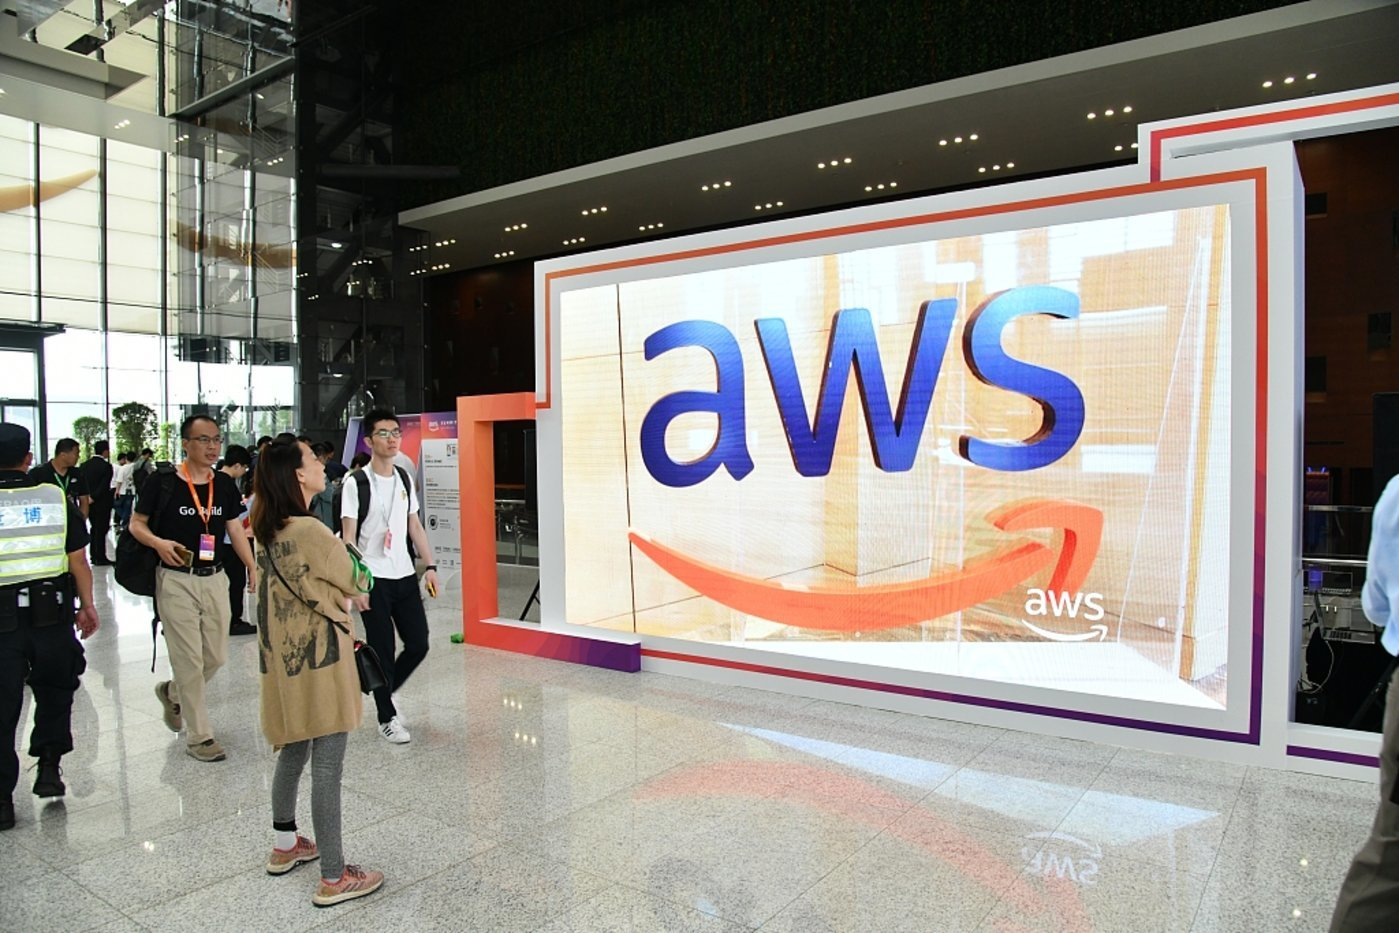 NetEase Cloud Classroom Offers Free AWS IT Courses to Public